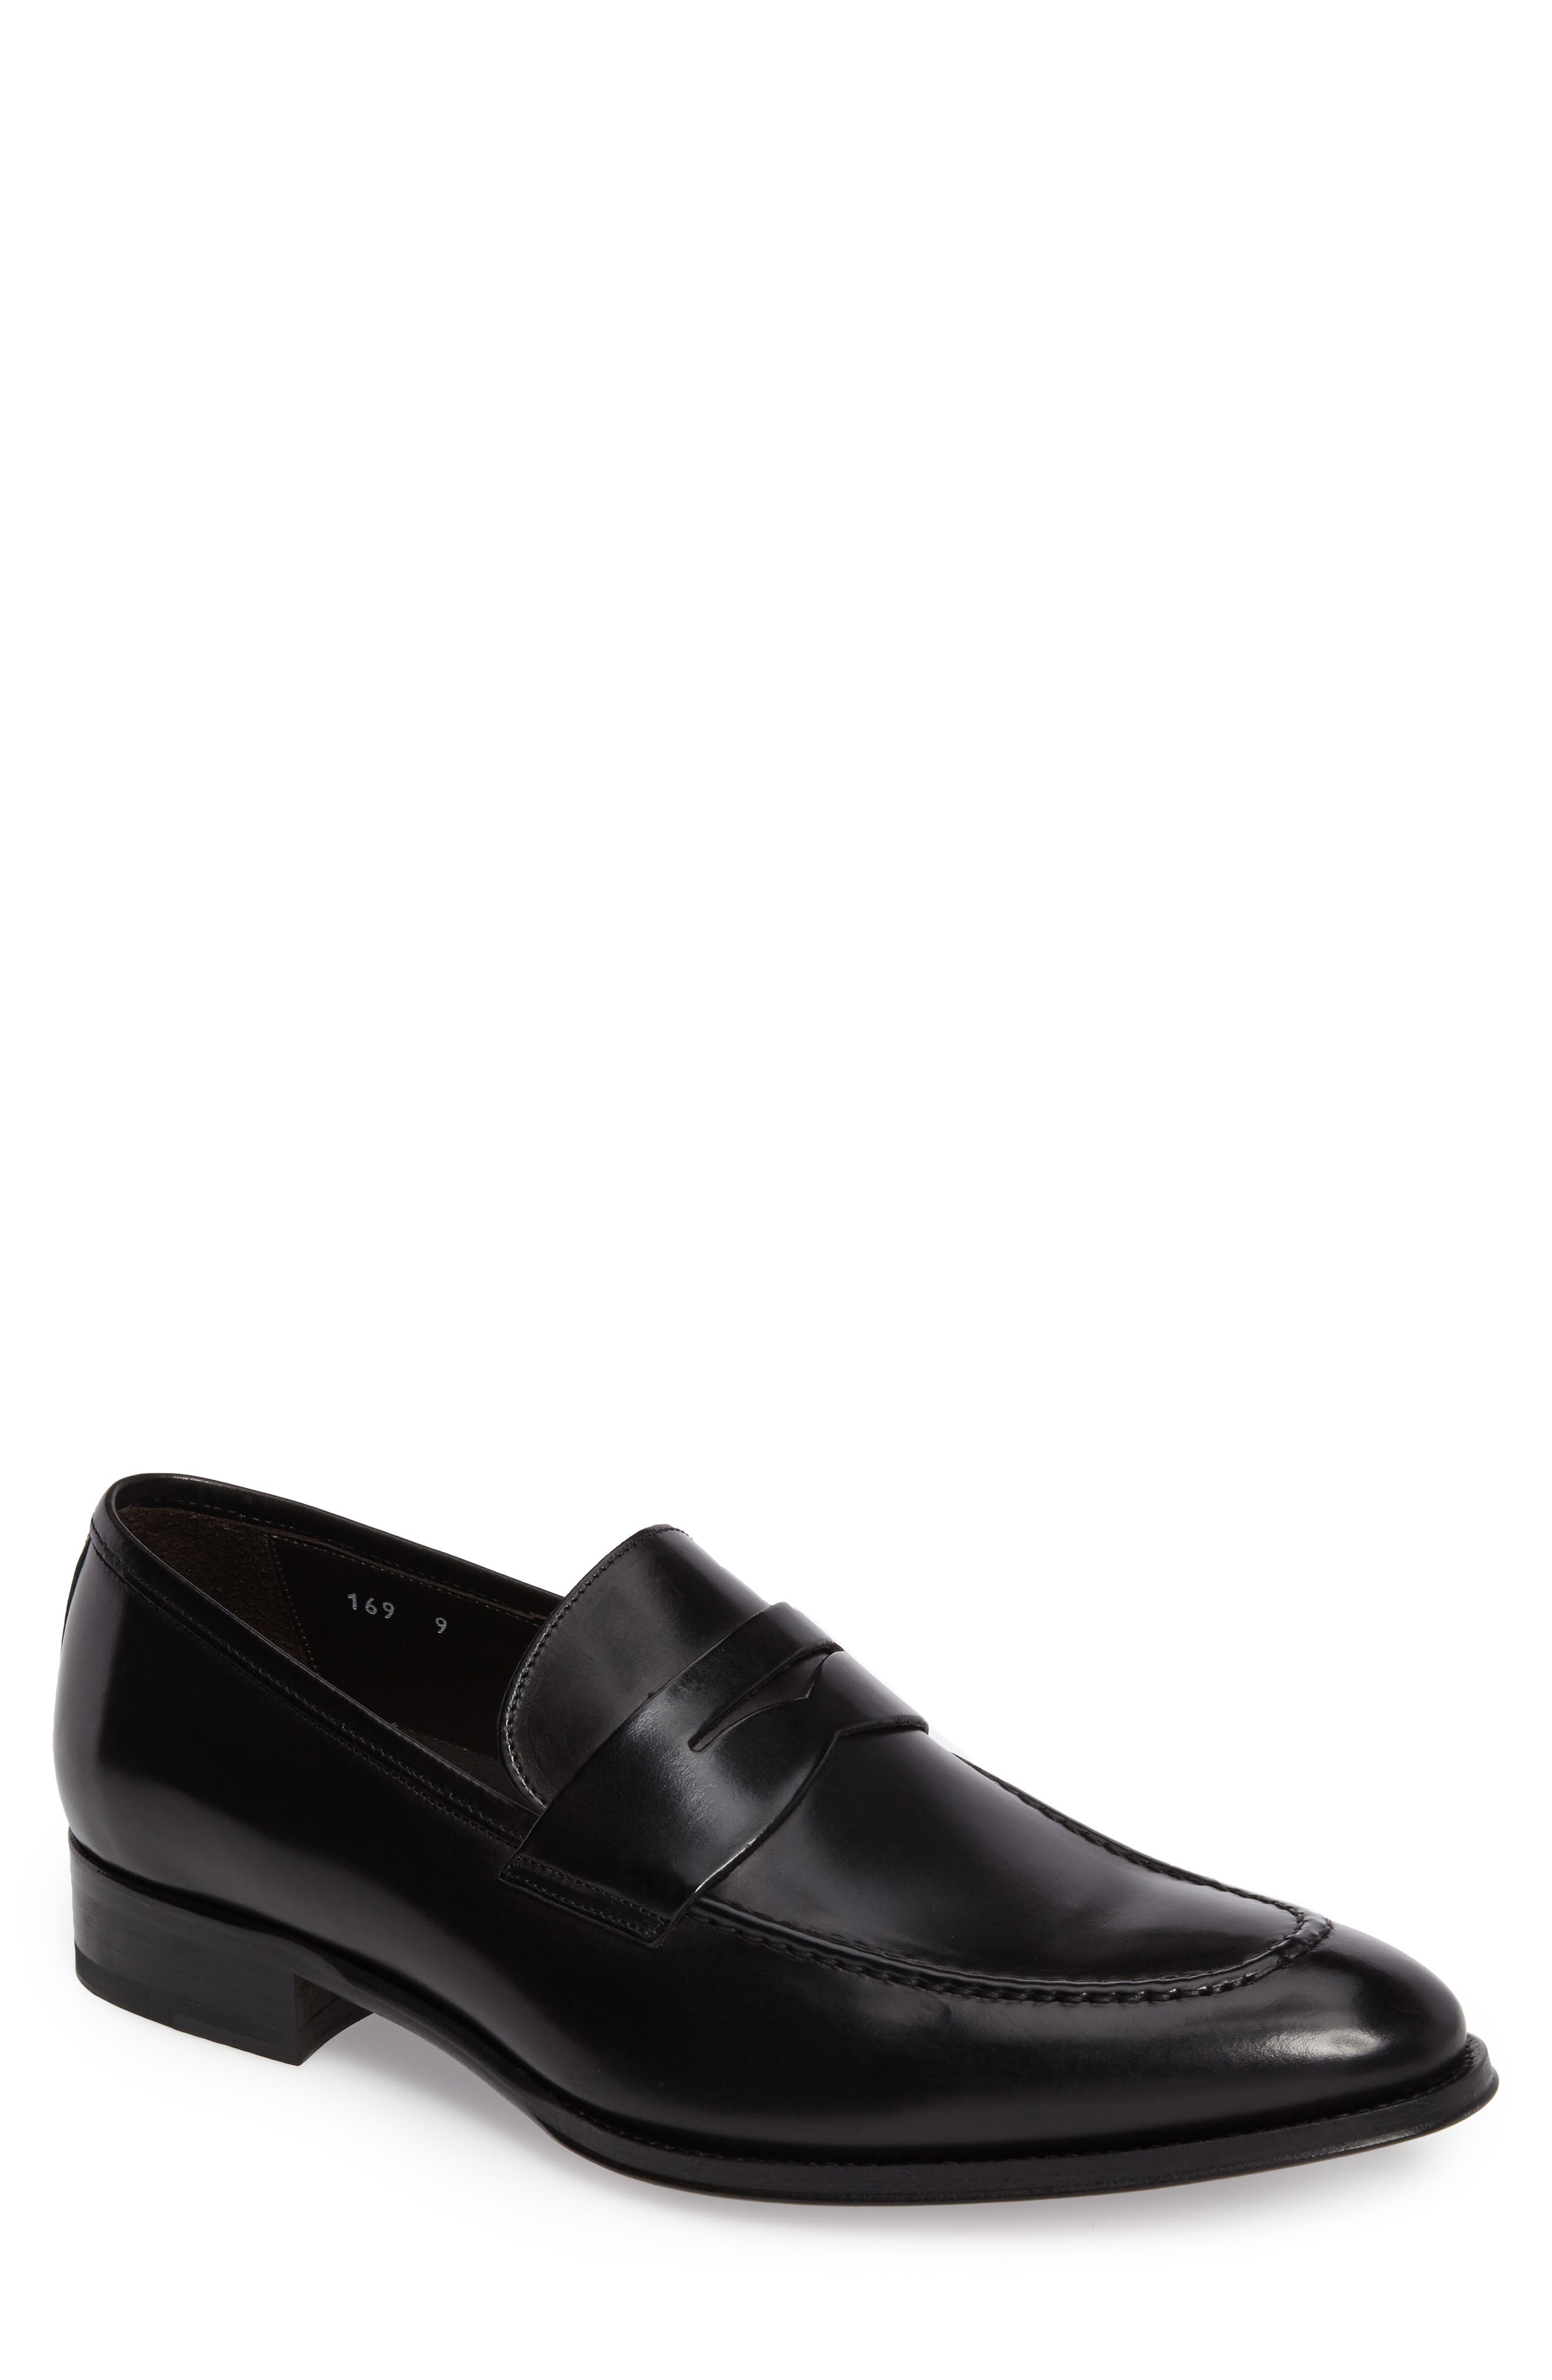 Alexander Penny Loafer,                             Main thumbnail 1, color,                             BLACK